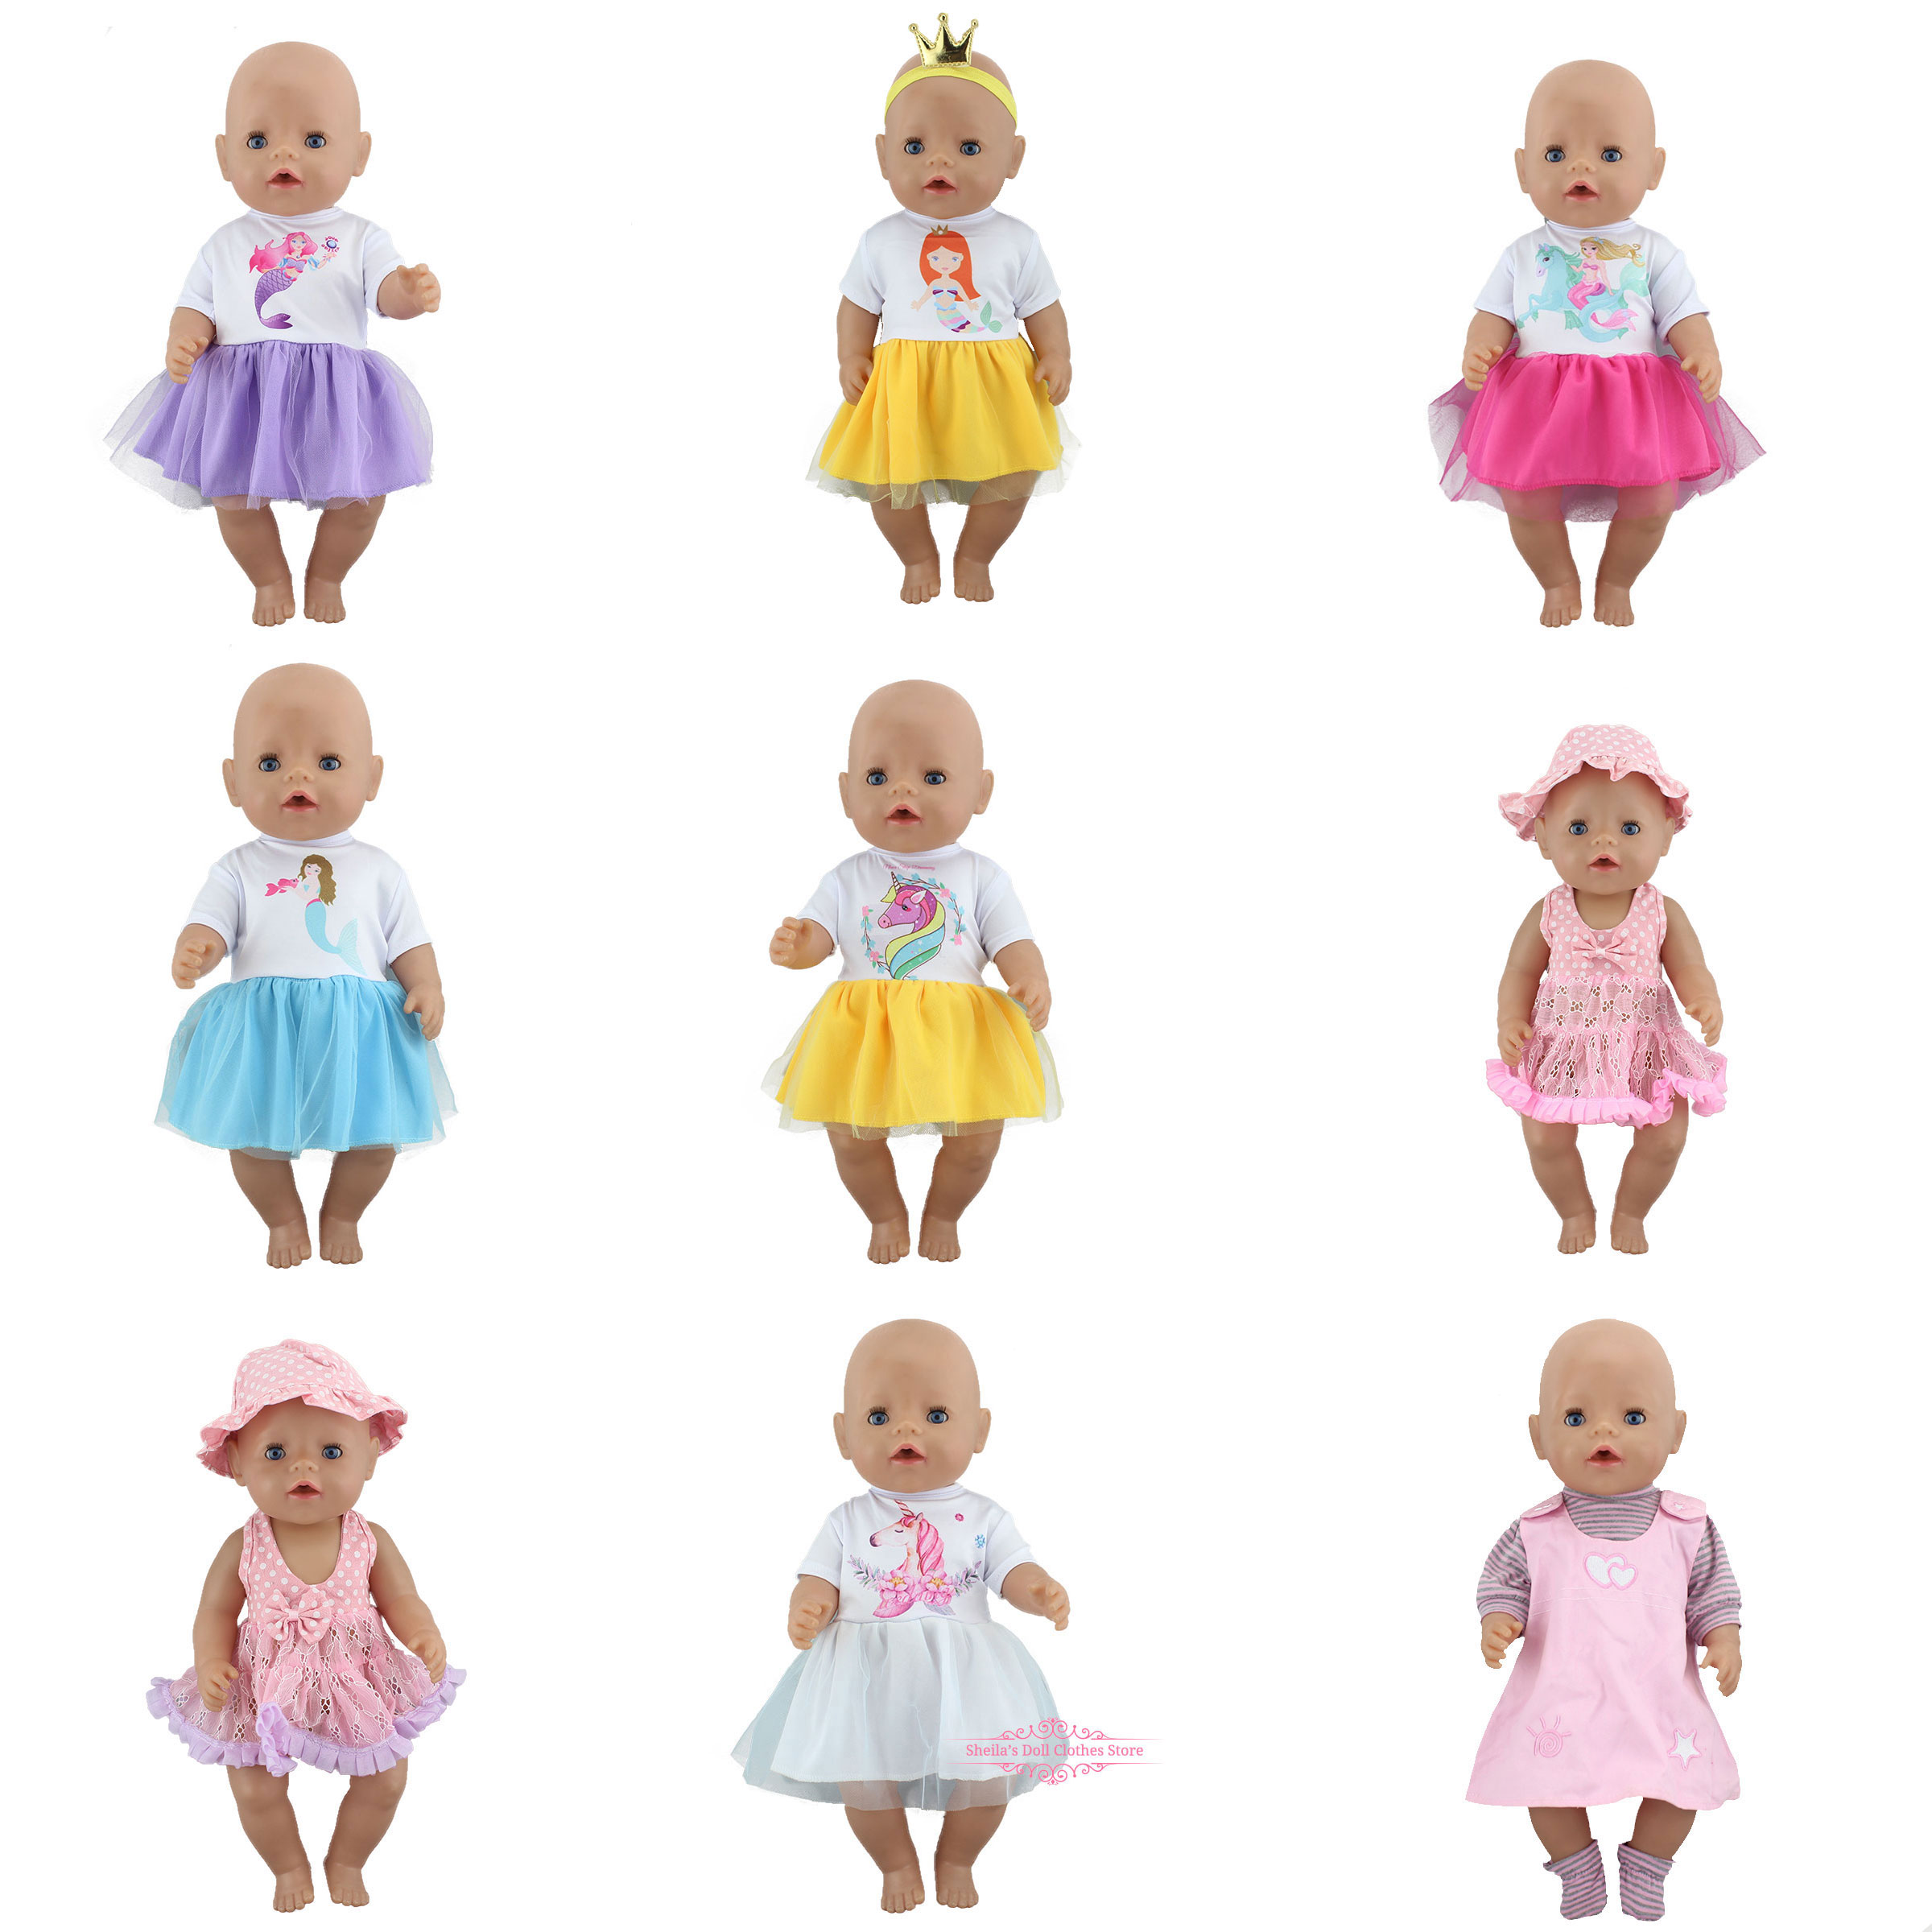 New Dress Fit For 17 Inch 43cm Baby Doll, Dolls Clothes And Accessories